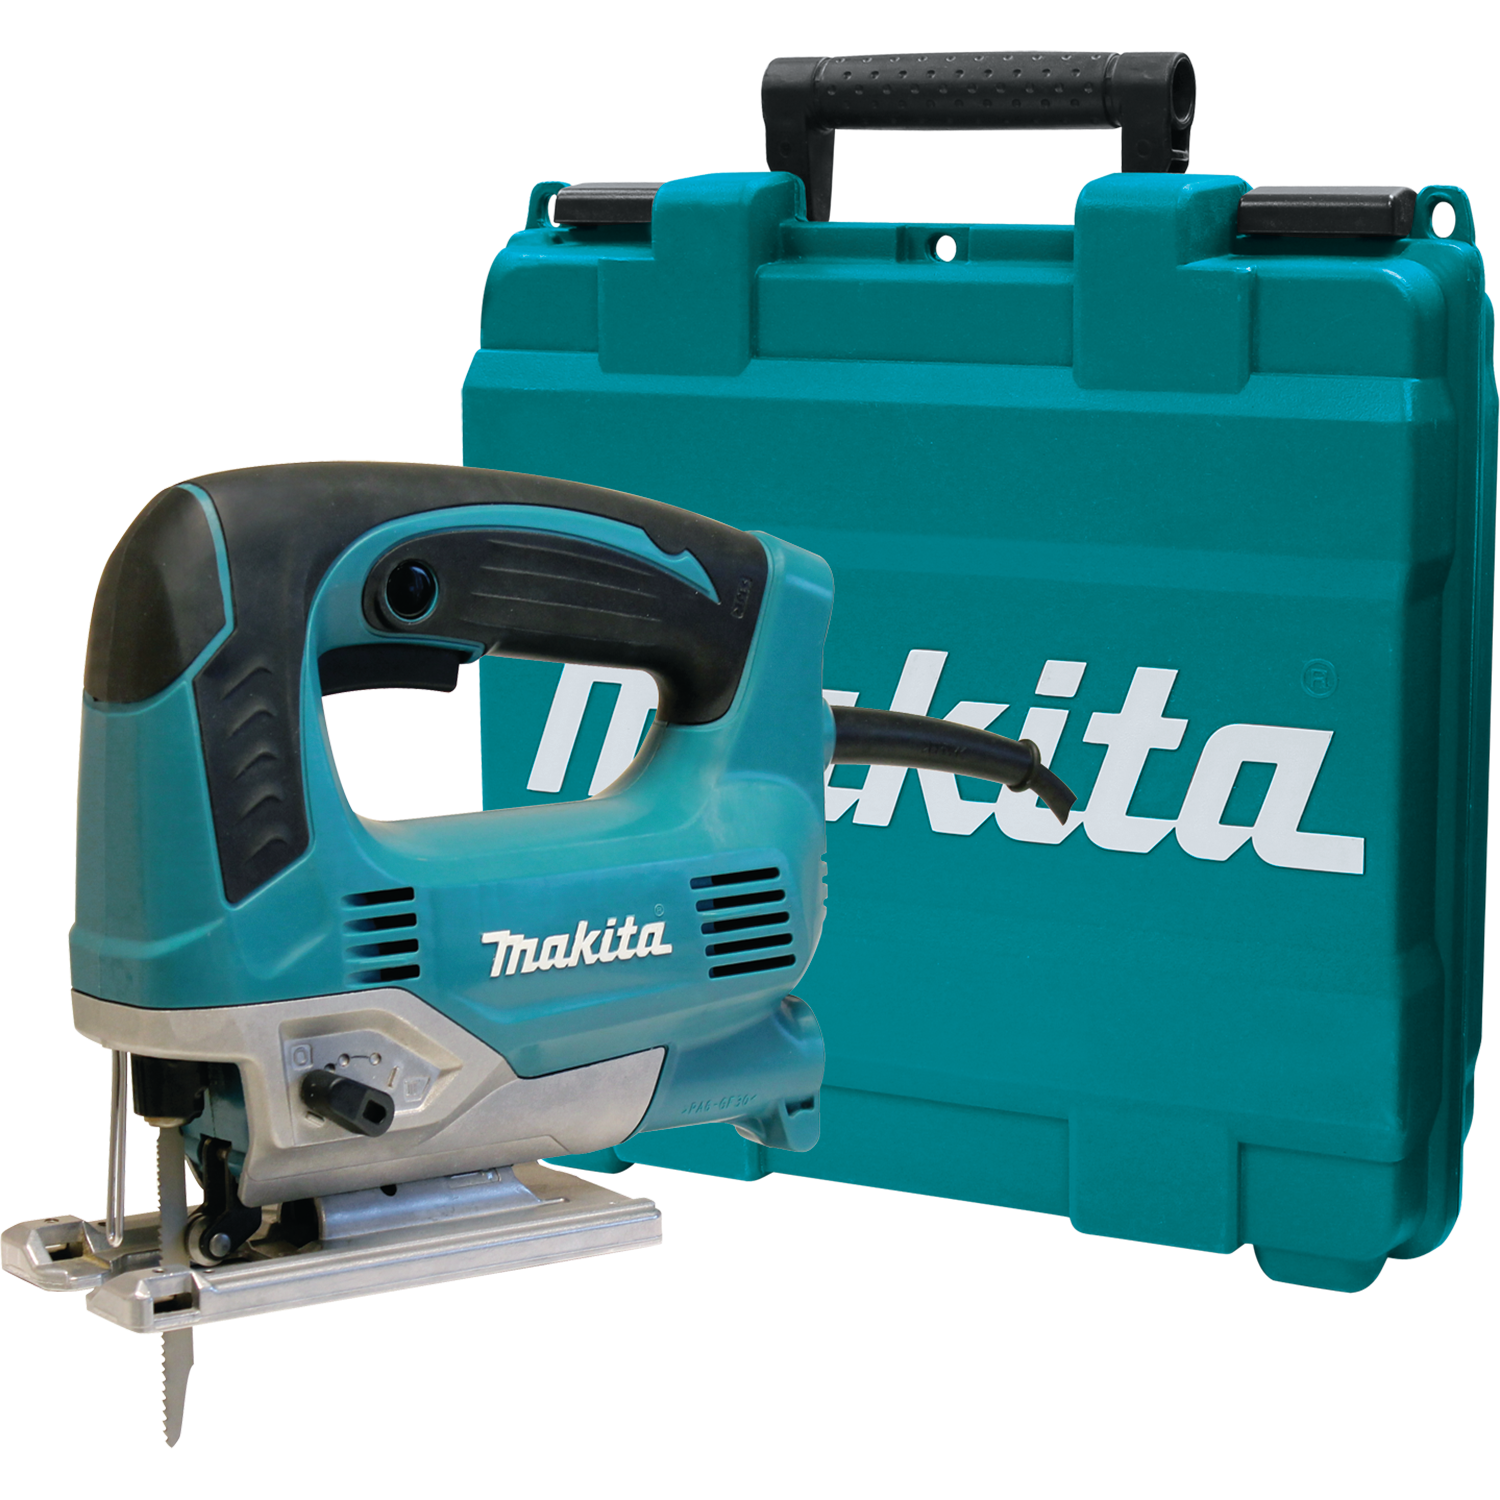 Makita usa product details jv0600k jv0600k greentooth Images